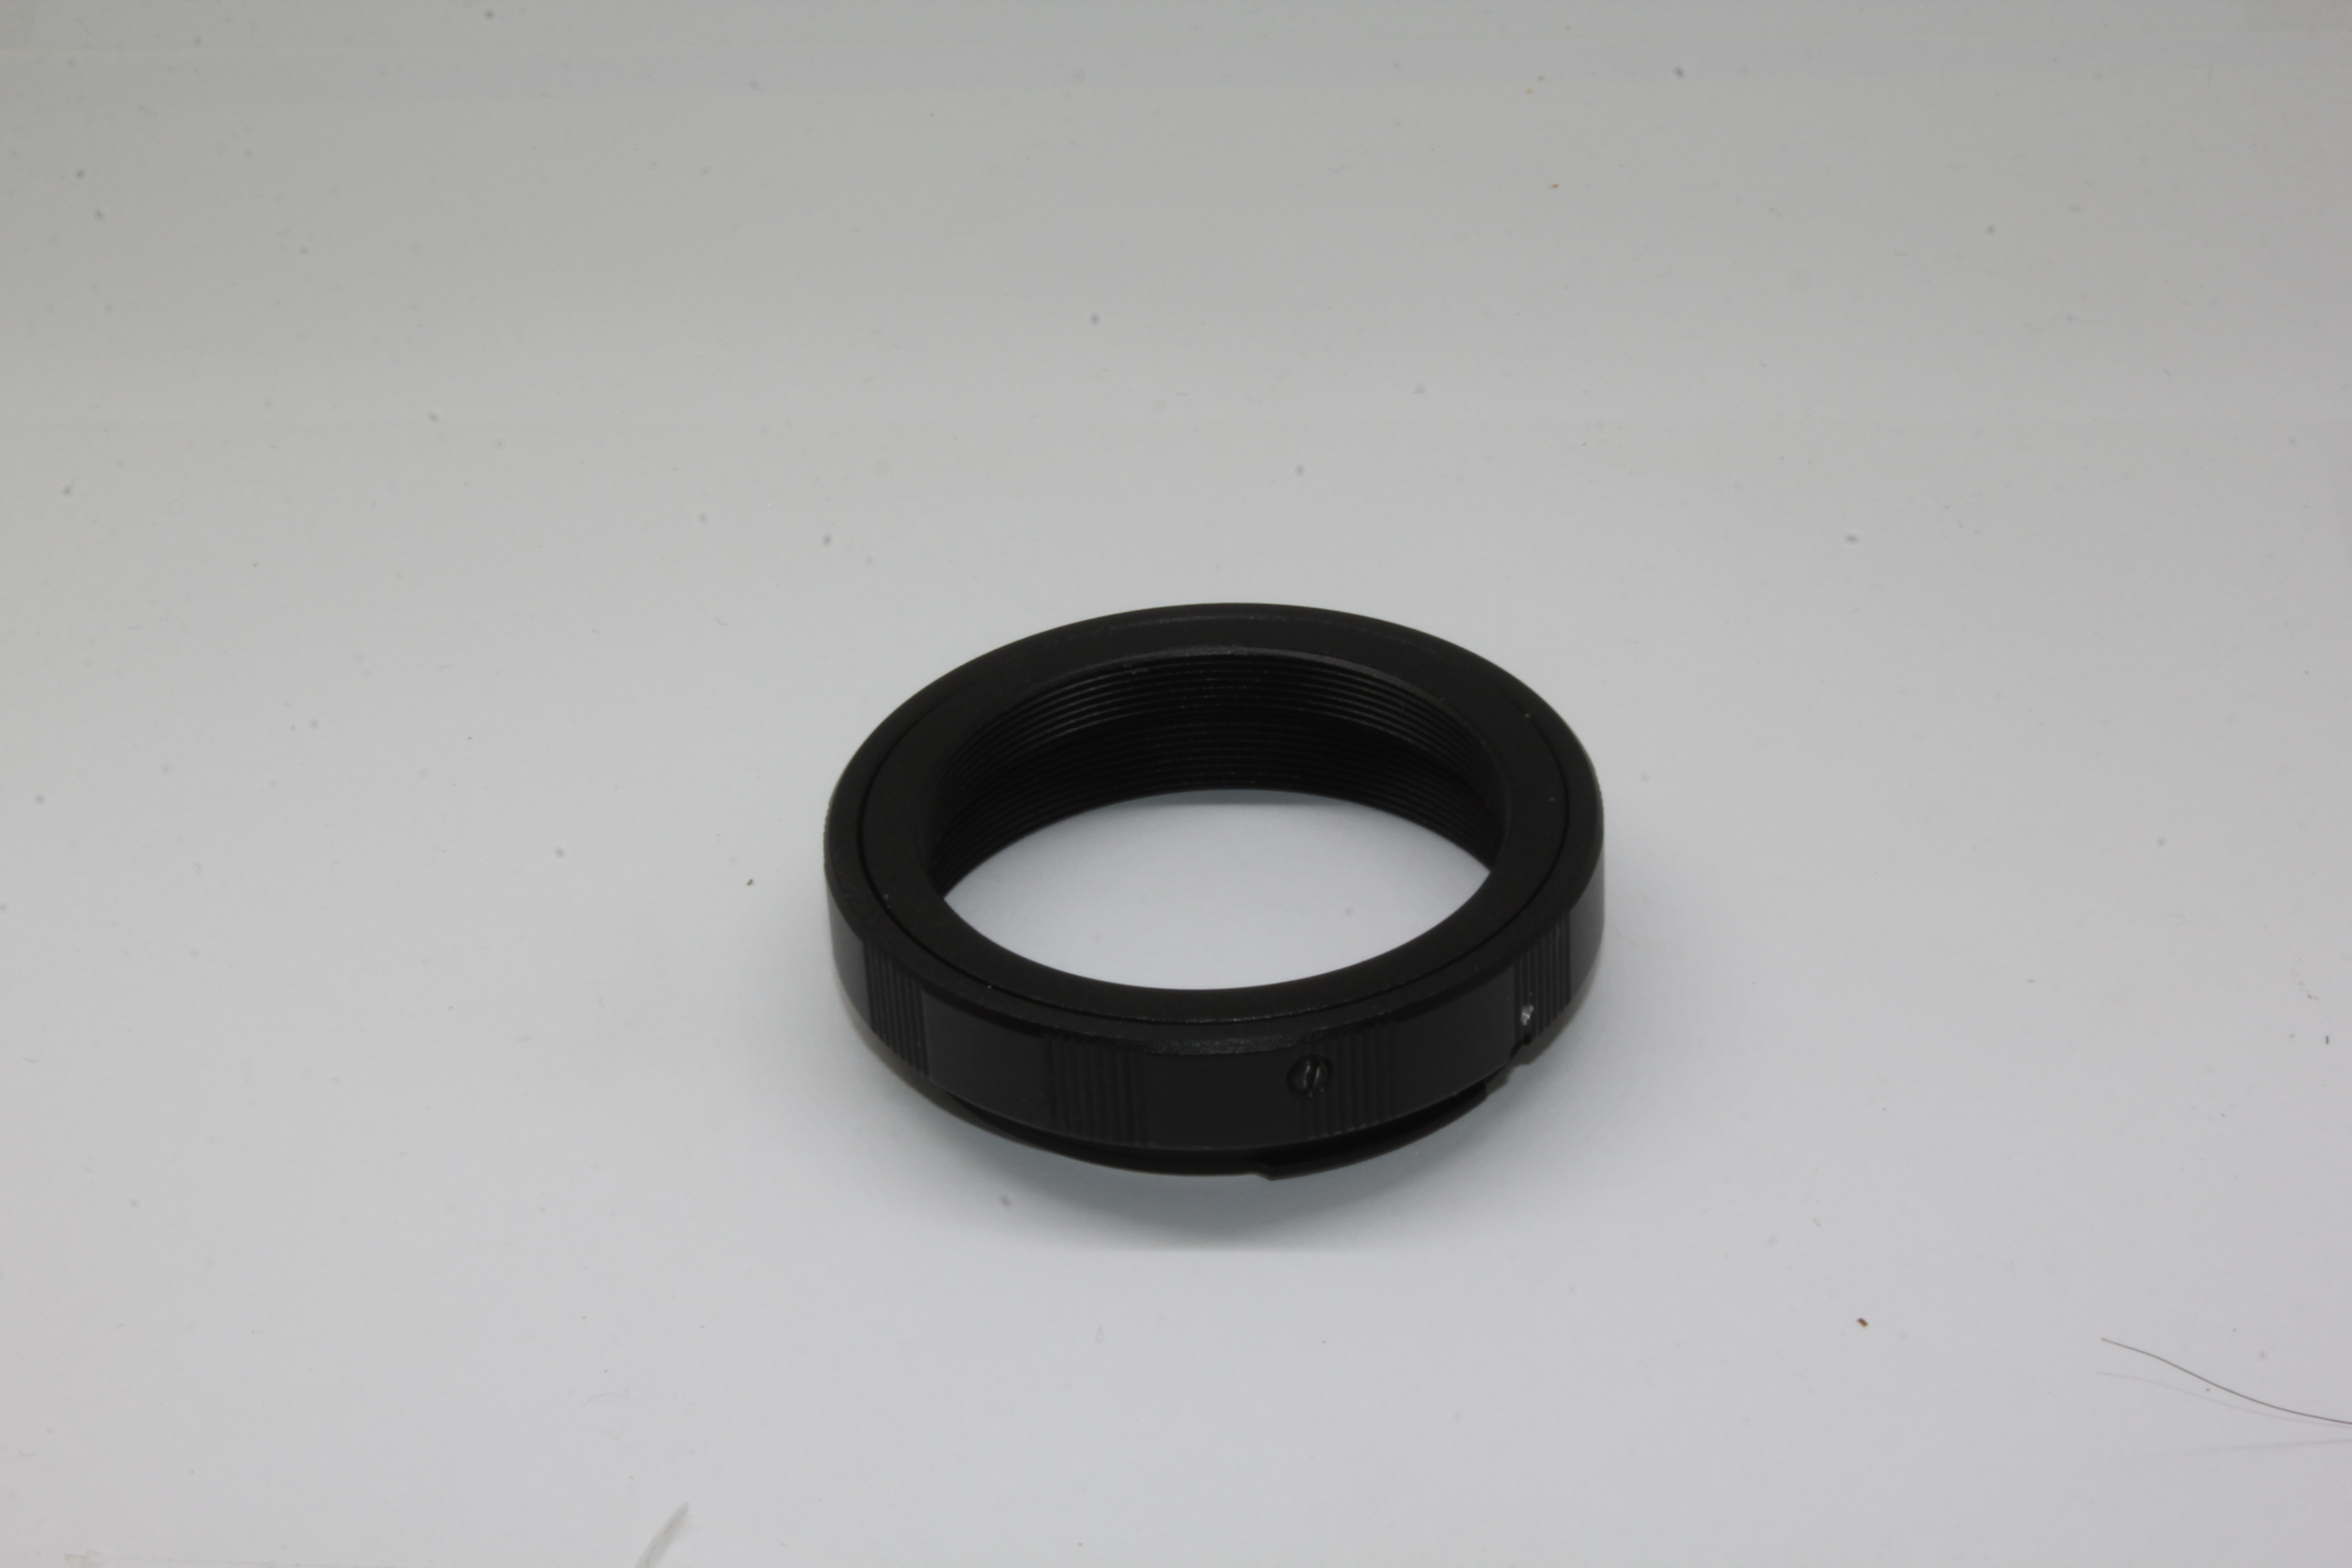 Sirius T-ring for Sony A-Mount